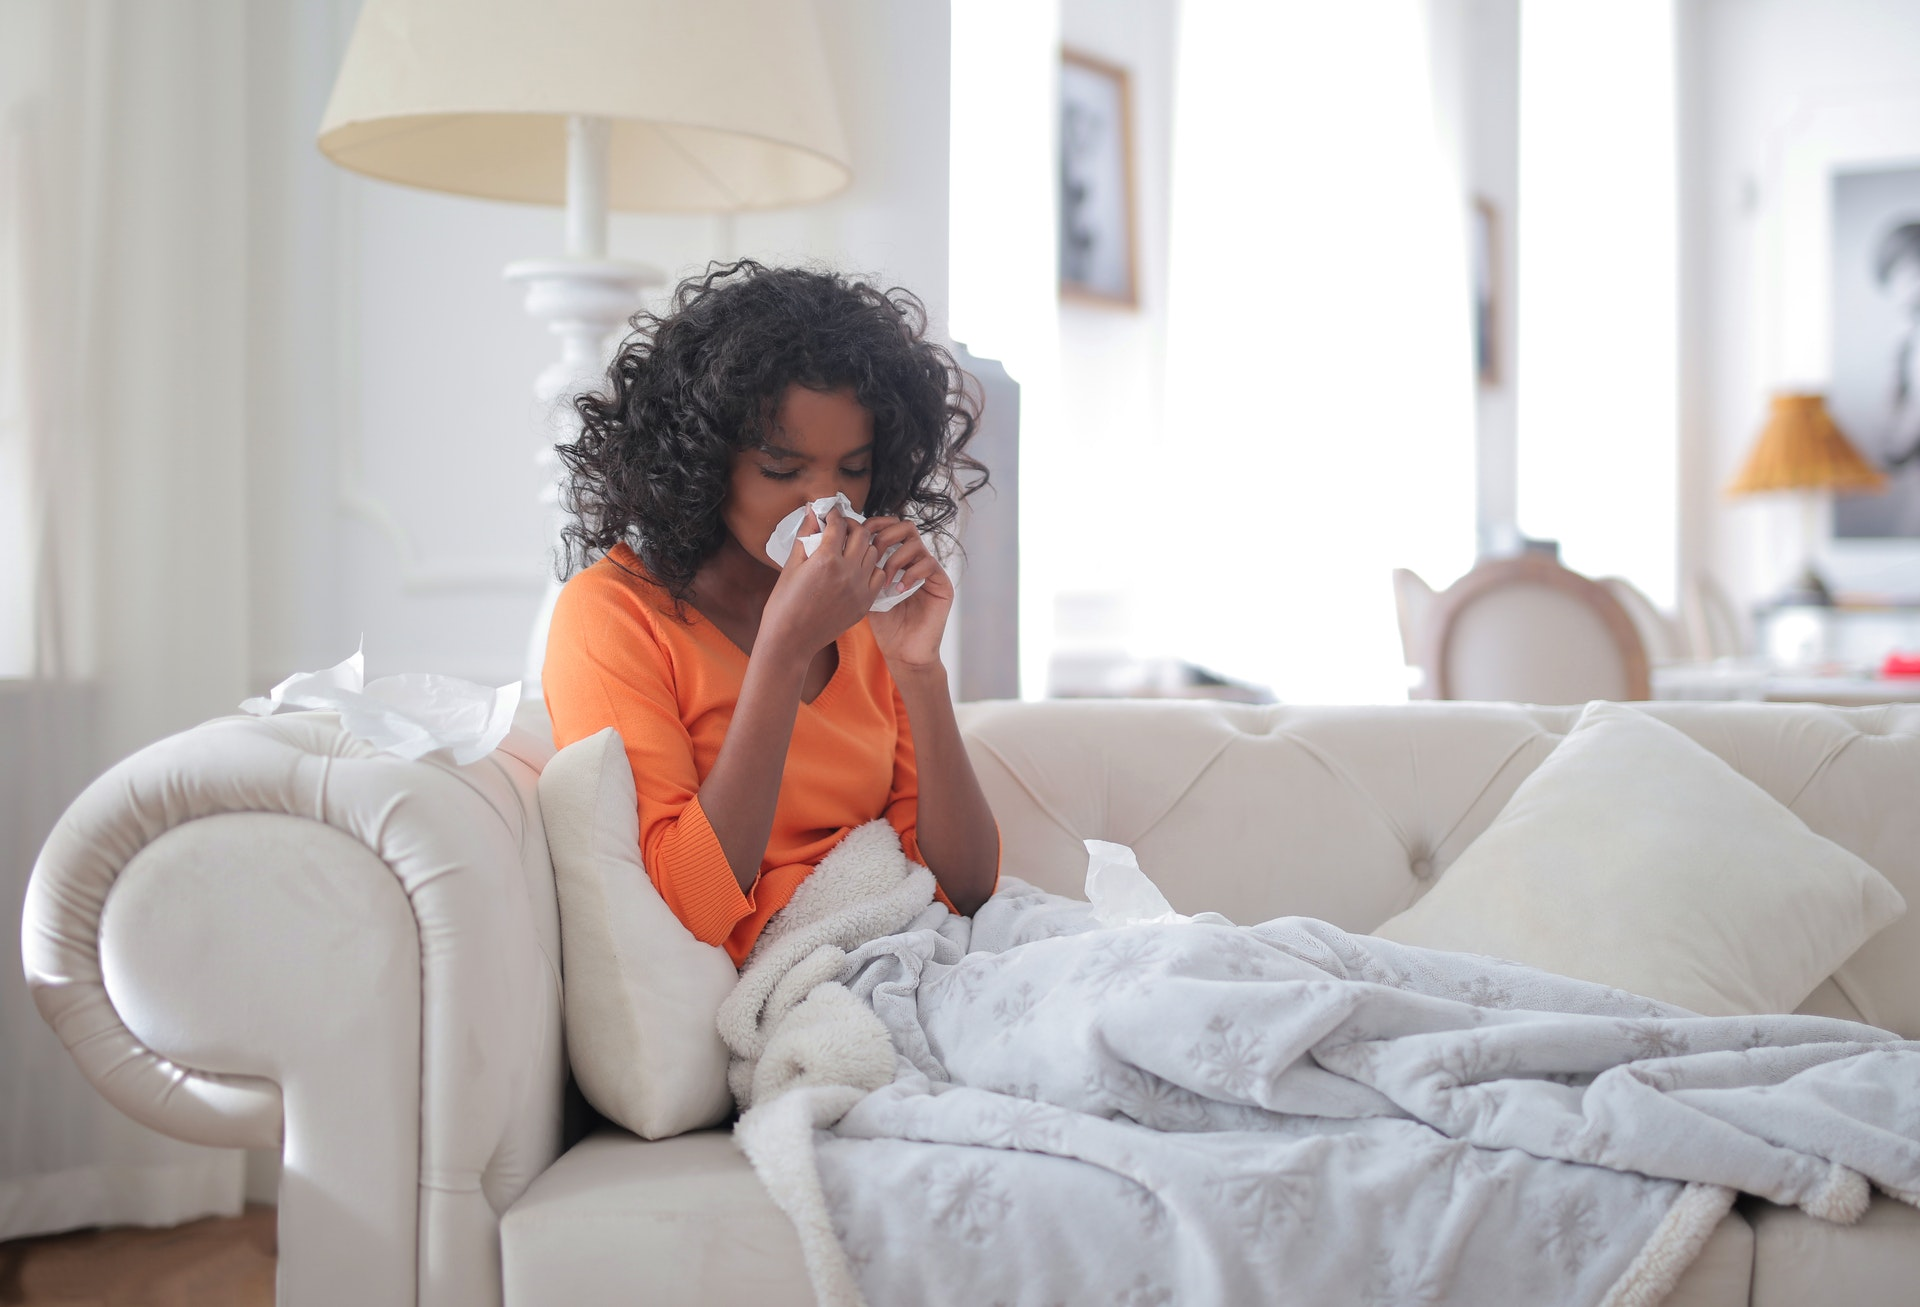 Woman on a couch wrapped in a blanket, sneezing